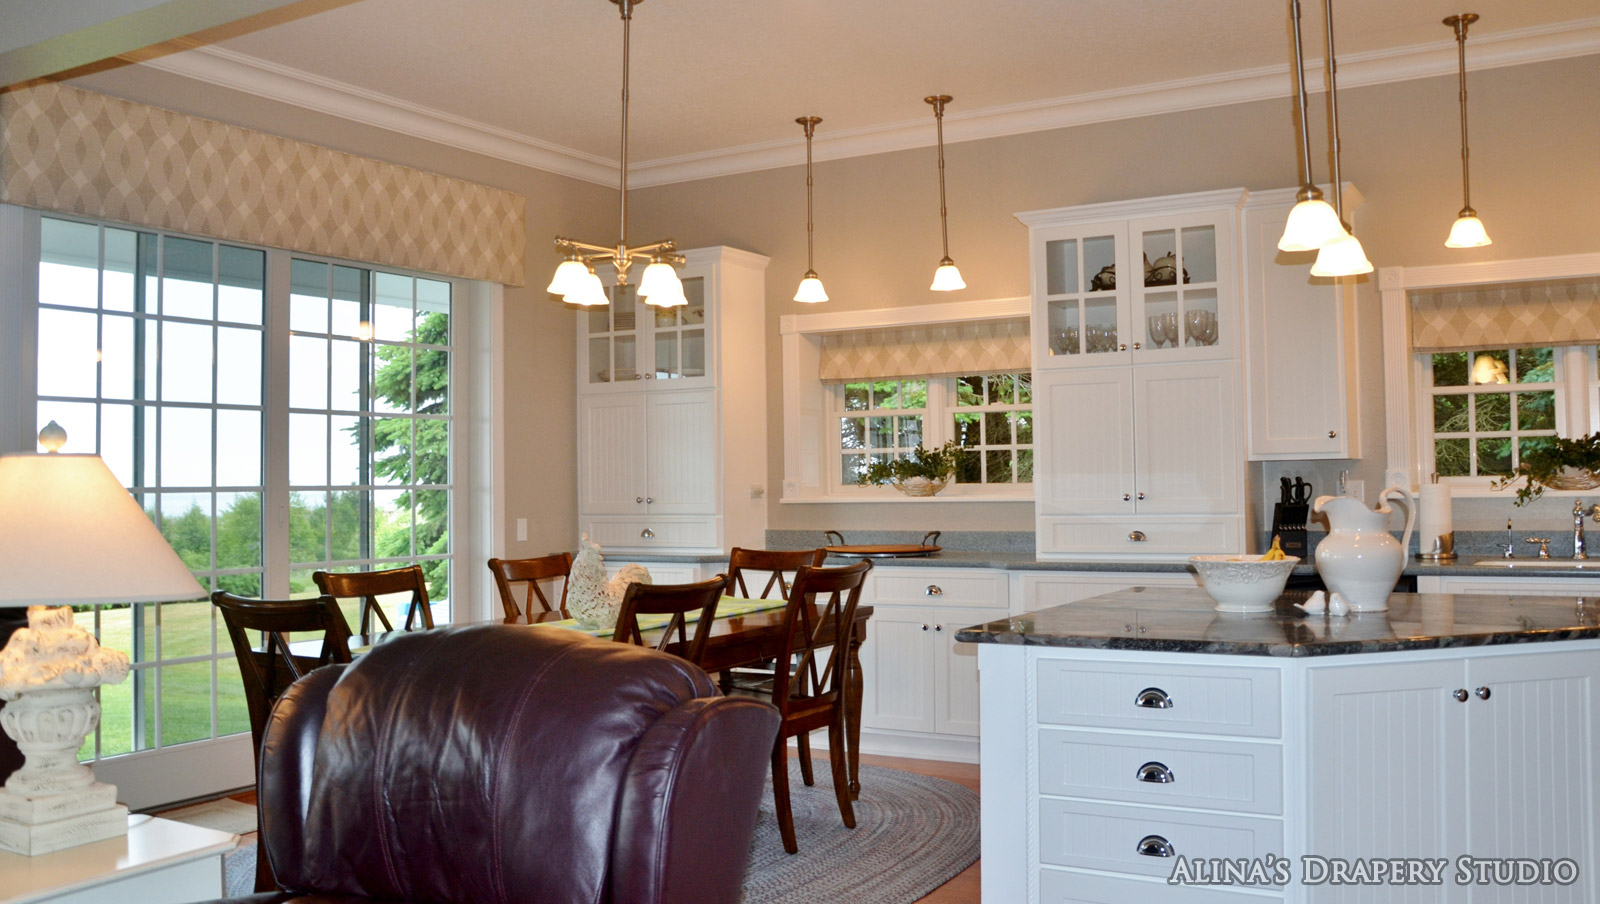 Kitchen Window Coverings Kitchen Window Coverings Did You Know Here At Cobblestone Gift